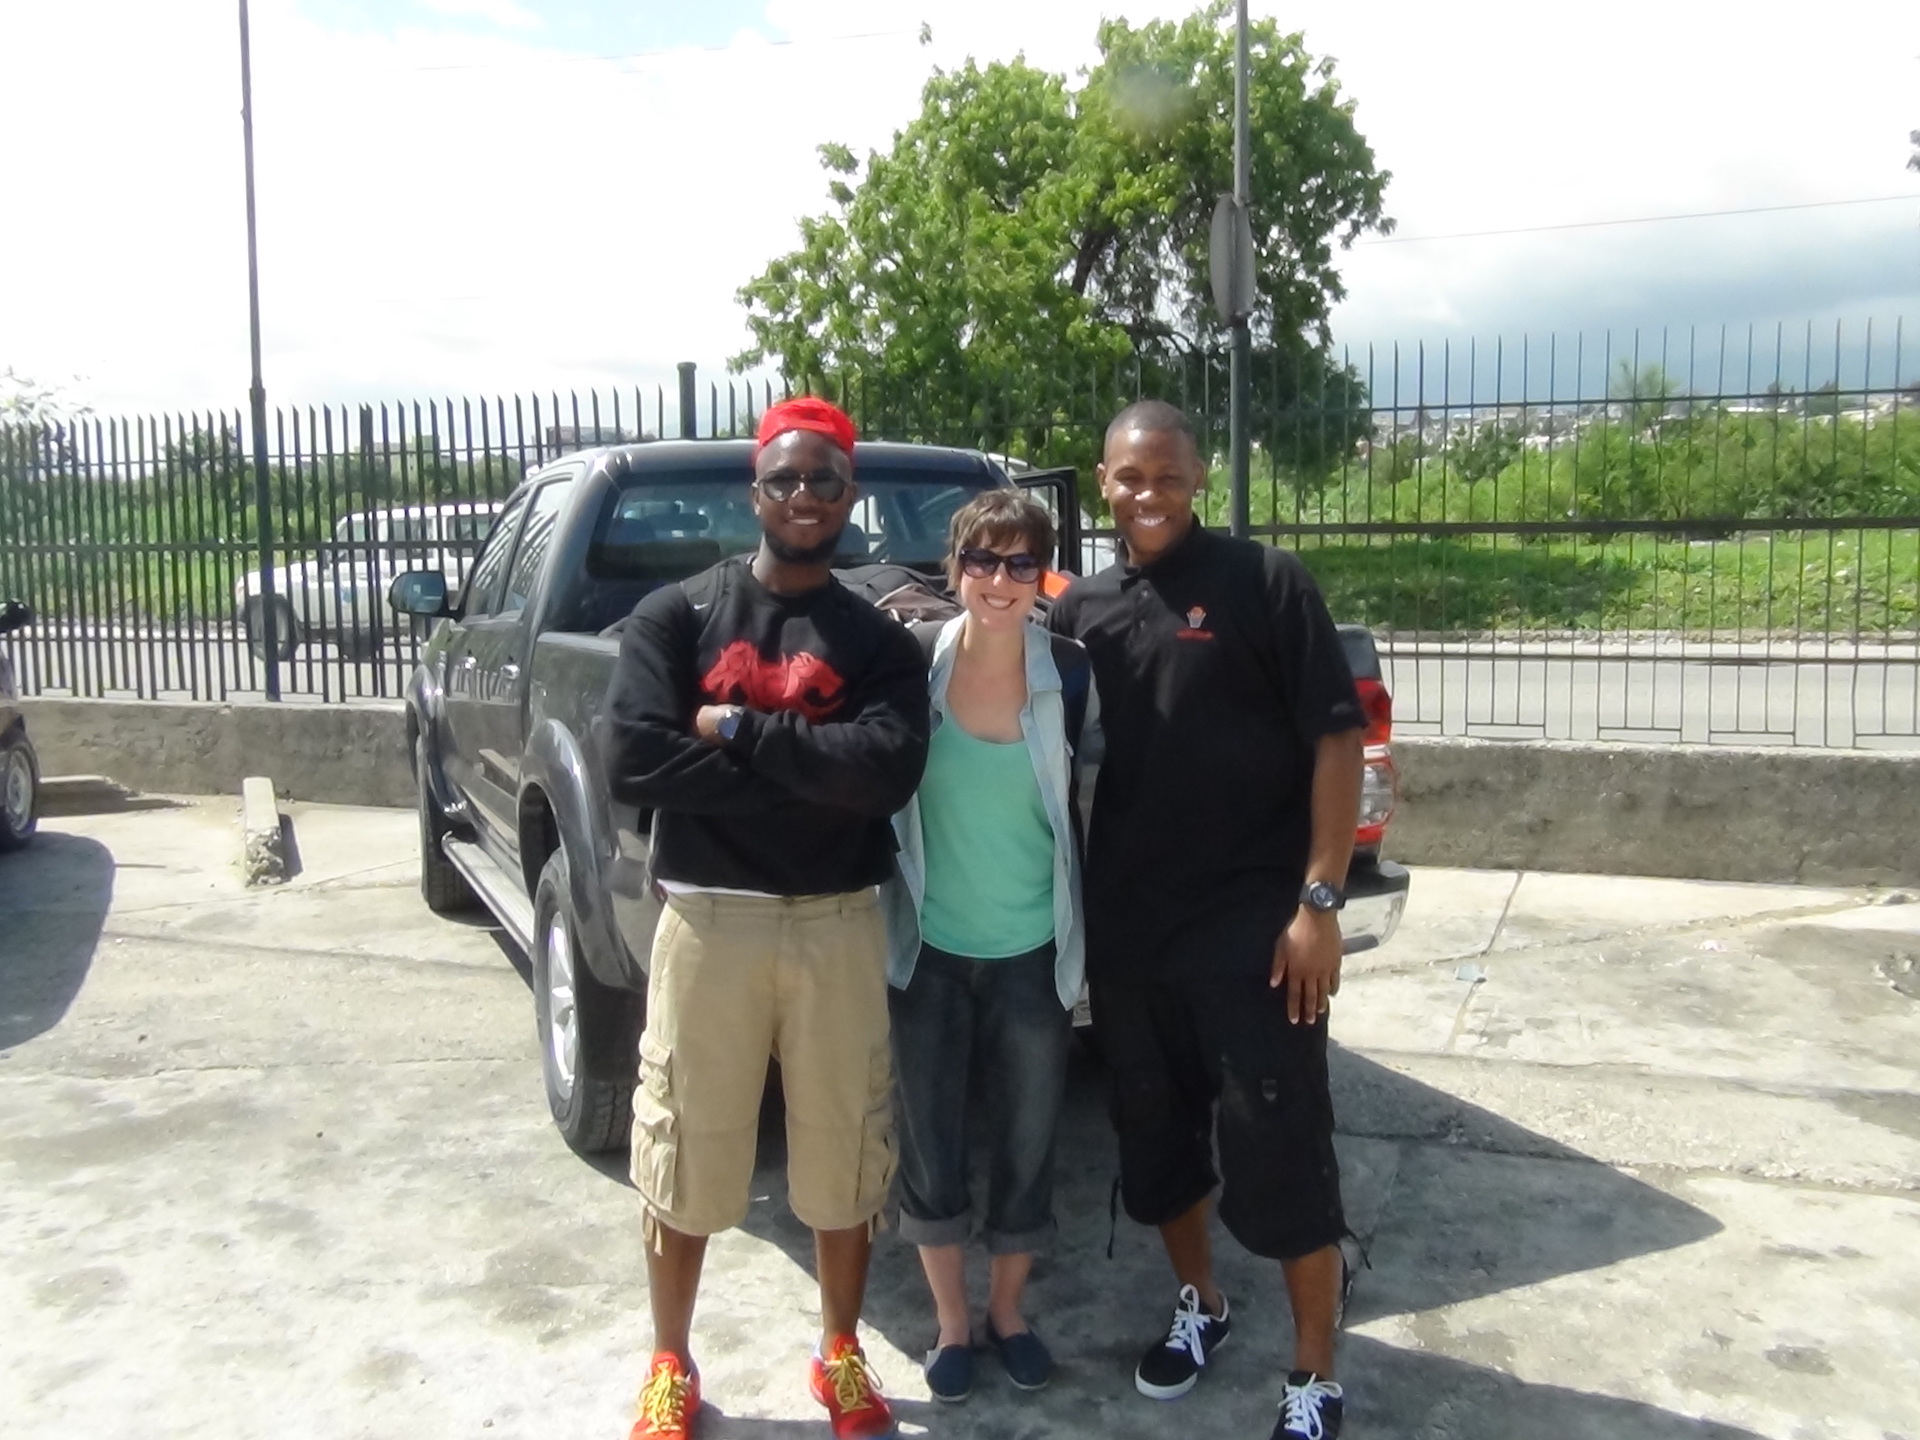 Our small team shorting after landing in Port au Prince in May 2014. From left to right, founder Ray Abellard, photographer Lexi Namer, and co-founder Andre Murray.